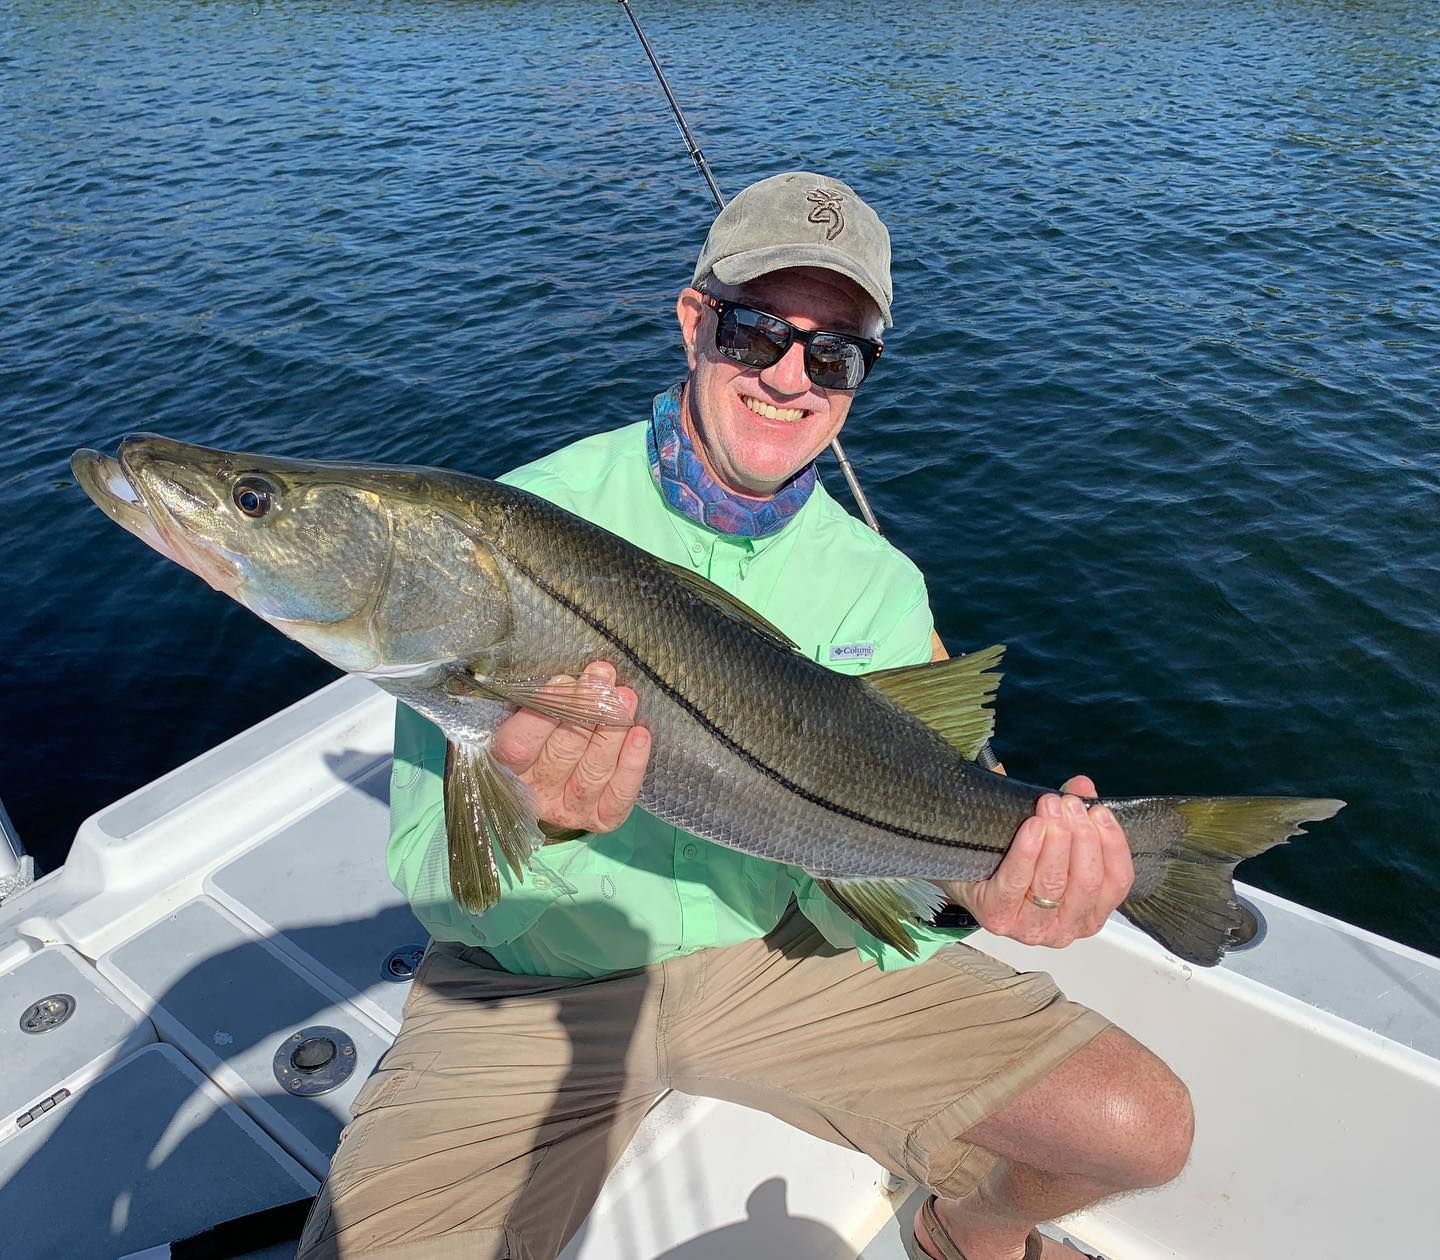 a picture of Spring 2021 Bradenton Fishing Charters: What To Expect with Captain Nate